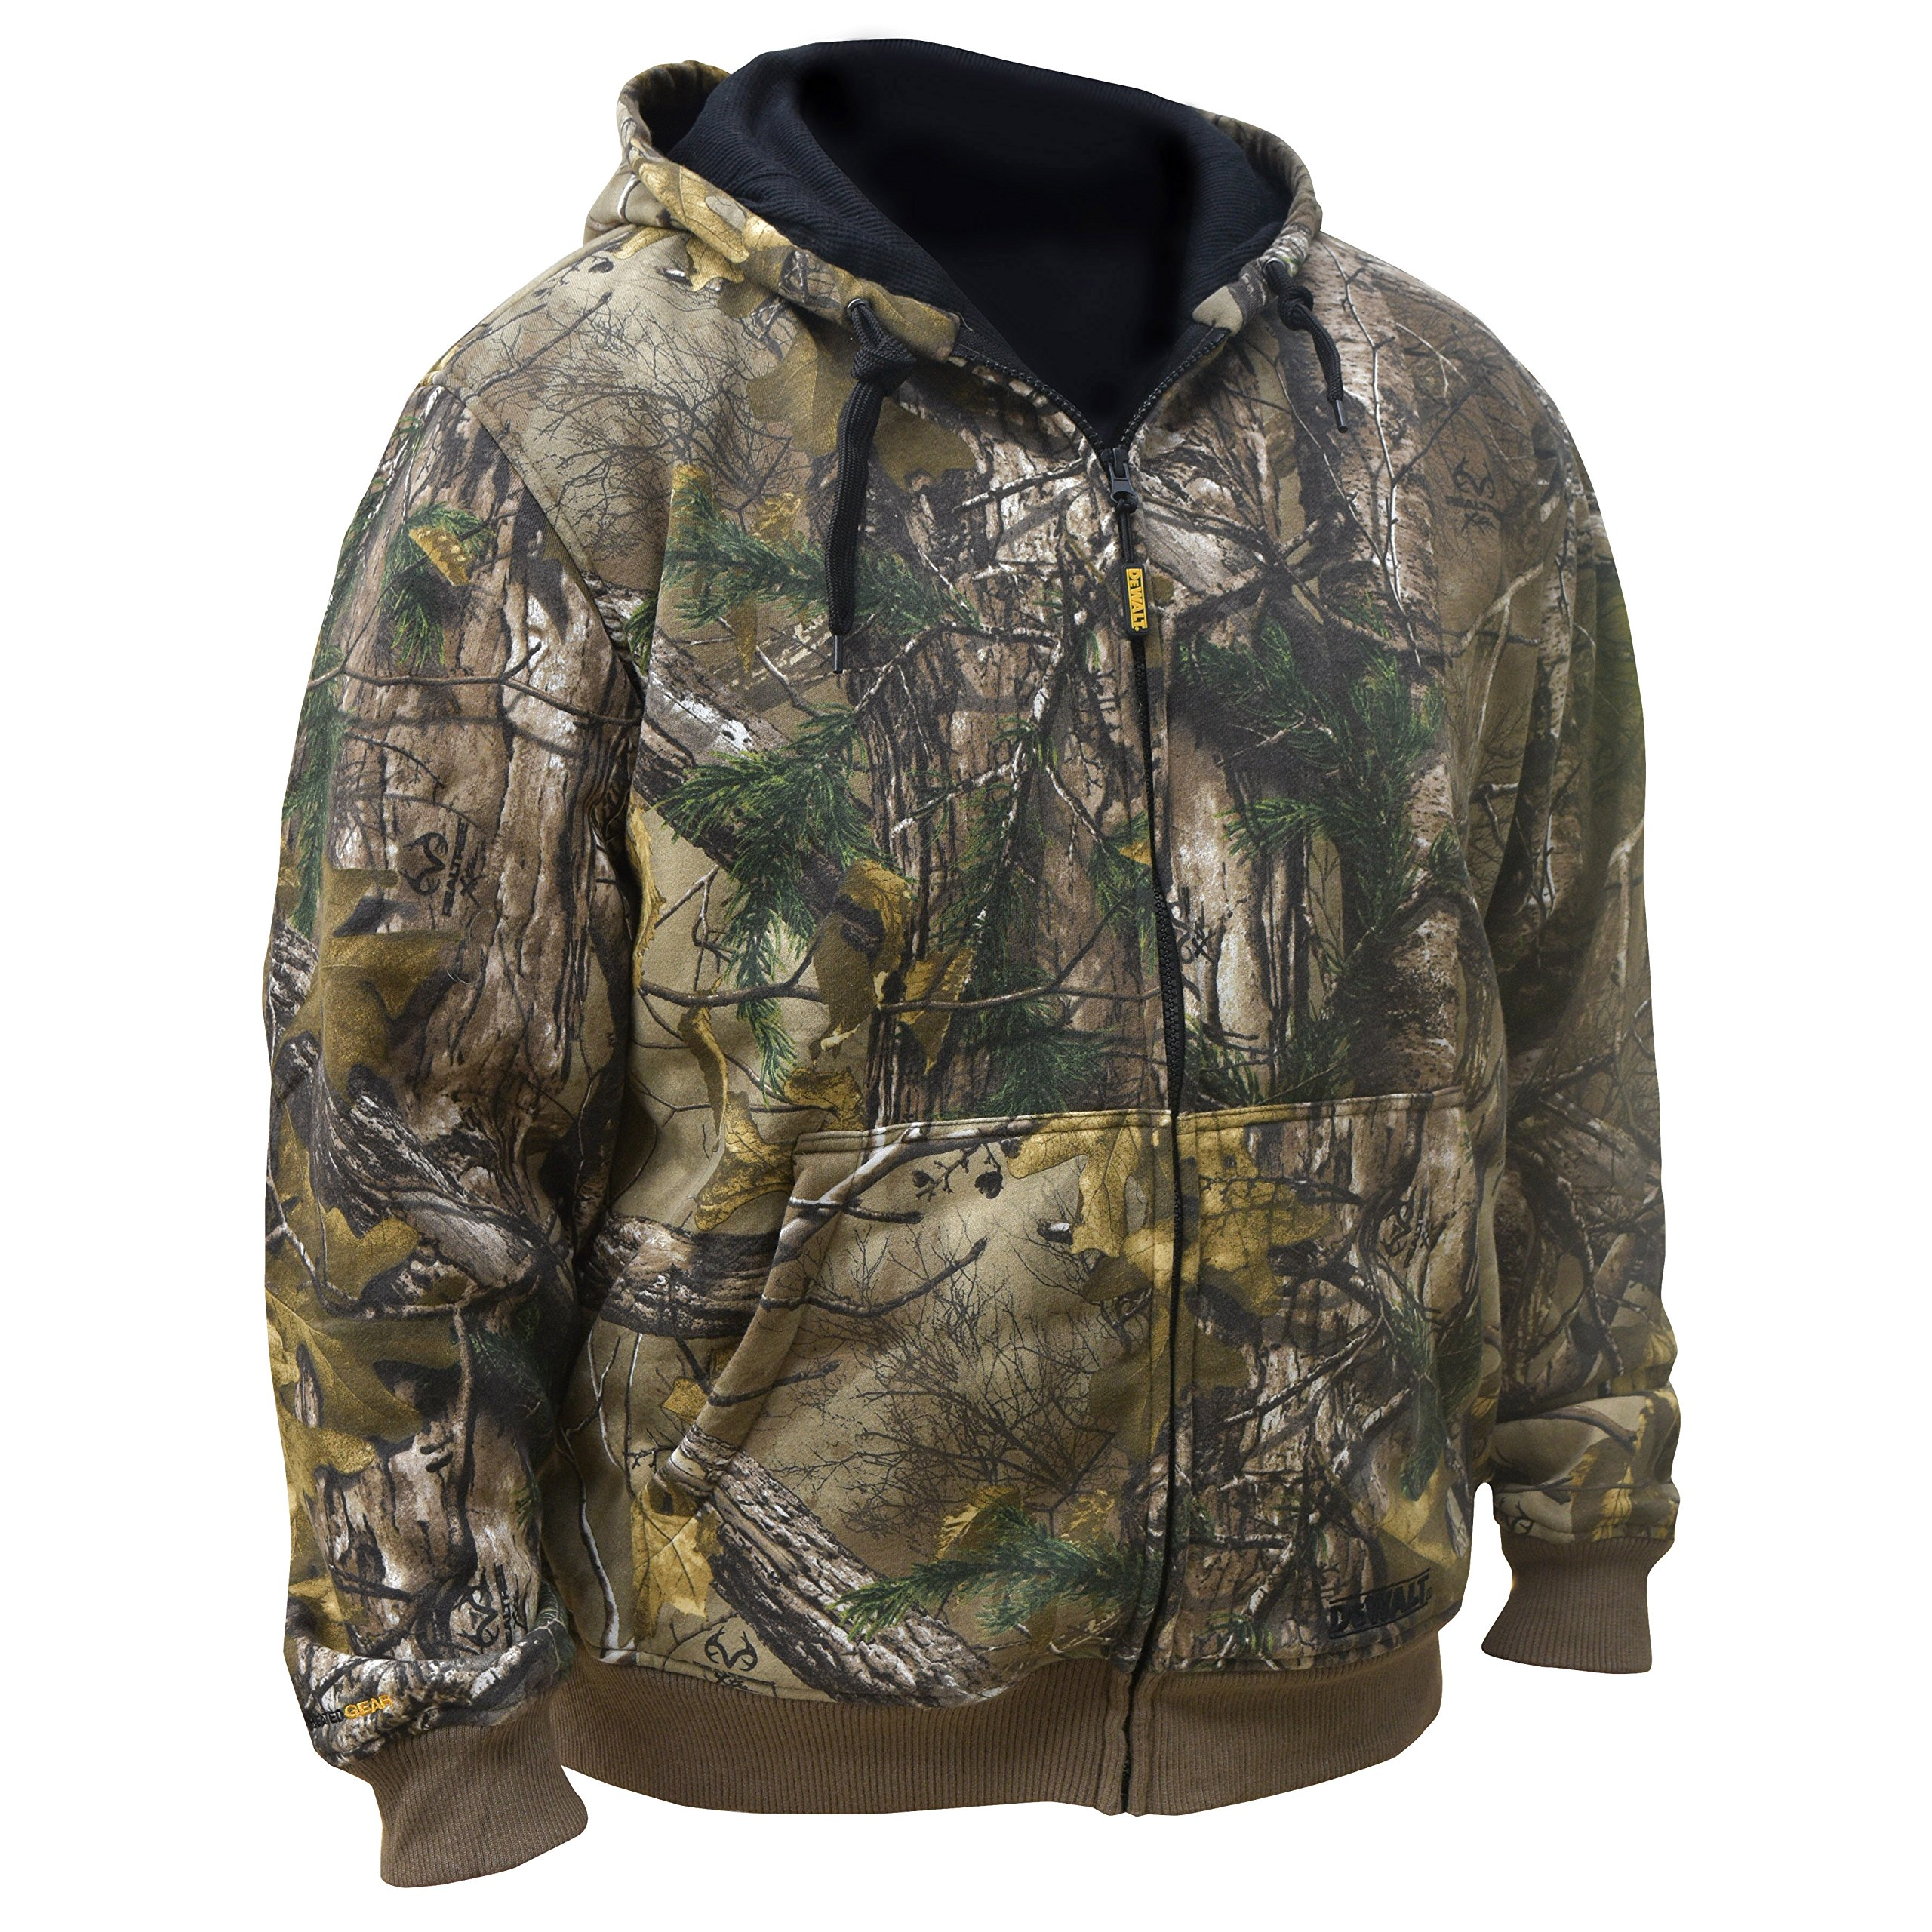 DEWALT DCHJ074D1-S Realtree Xtra️ Camouflage Heated Hoodie, Small, Camouflage